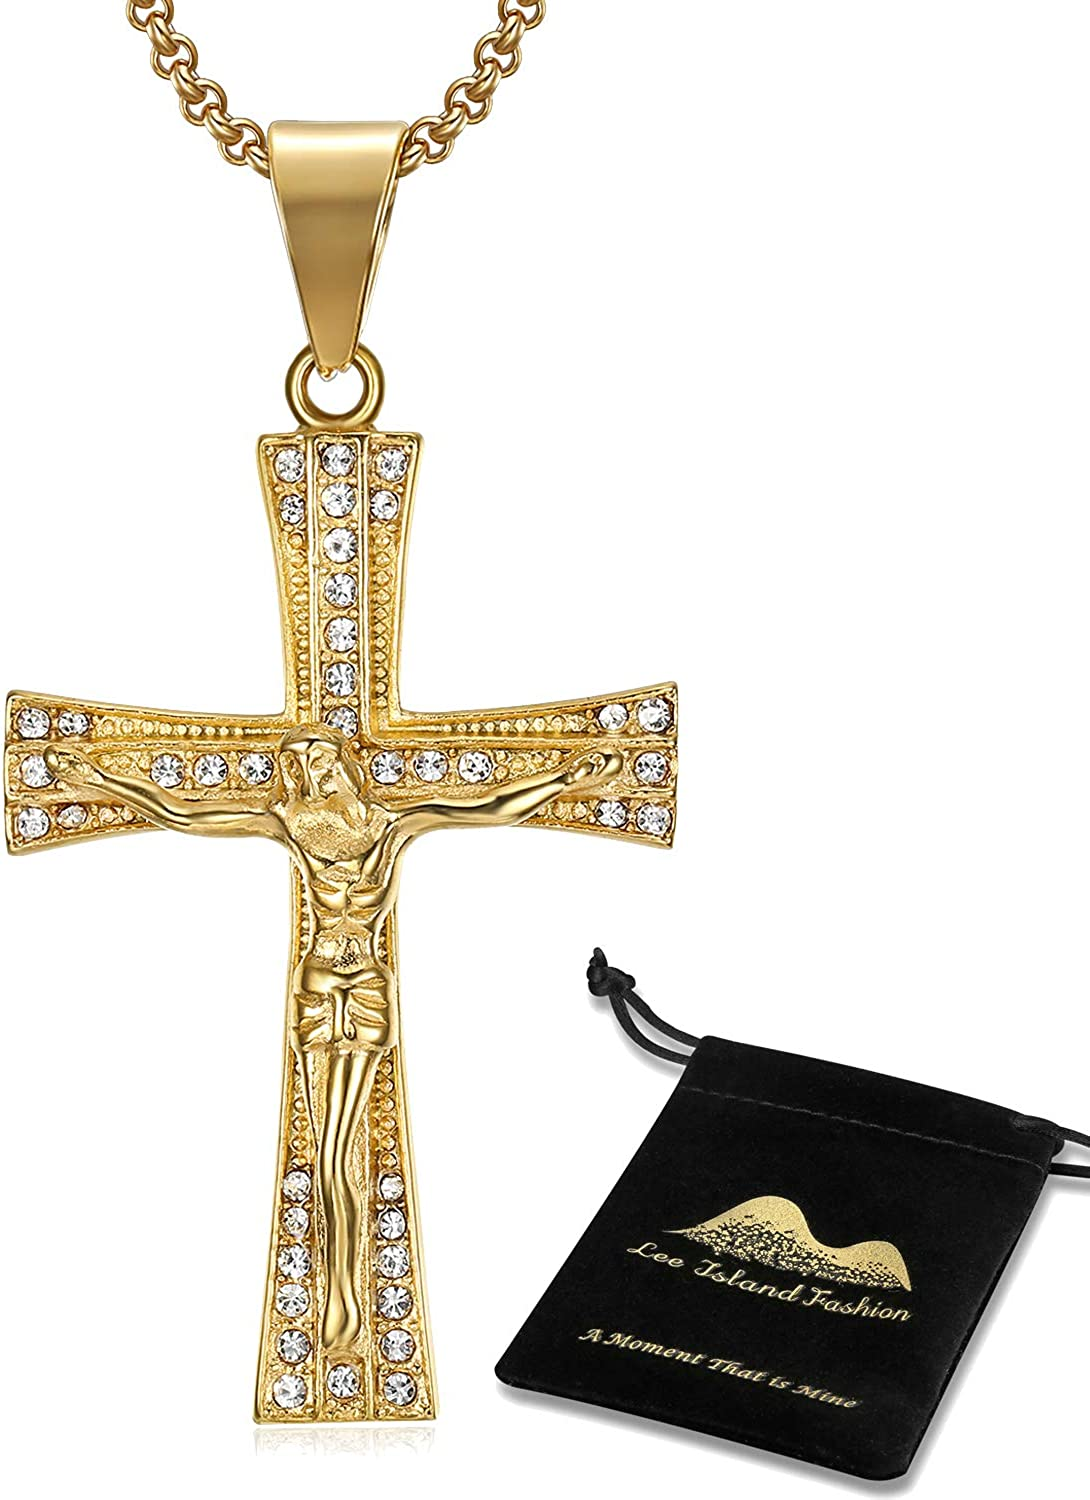 Onepine Stainless Steel Necklace Jesus Christ Crucifix Mens Necklace Antique Cross Religious Pendant Necklace Gold 24 Chain